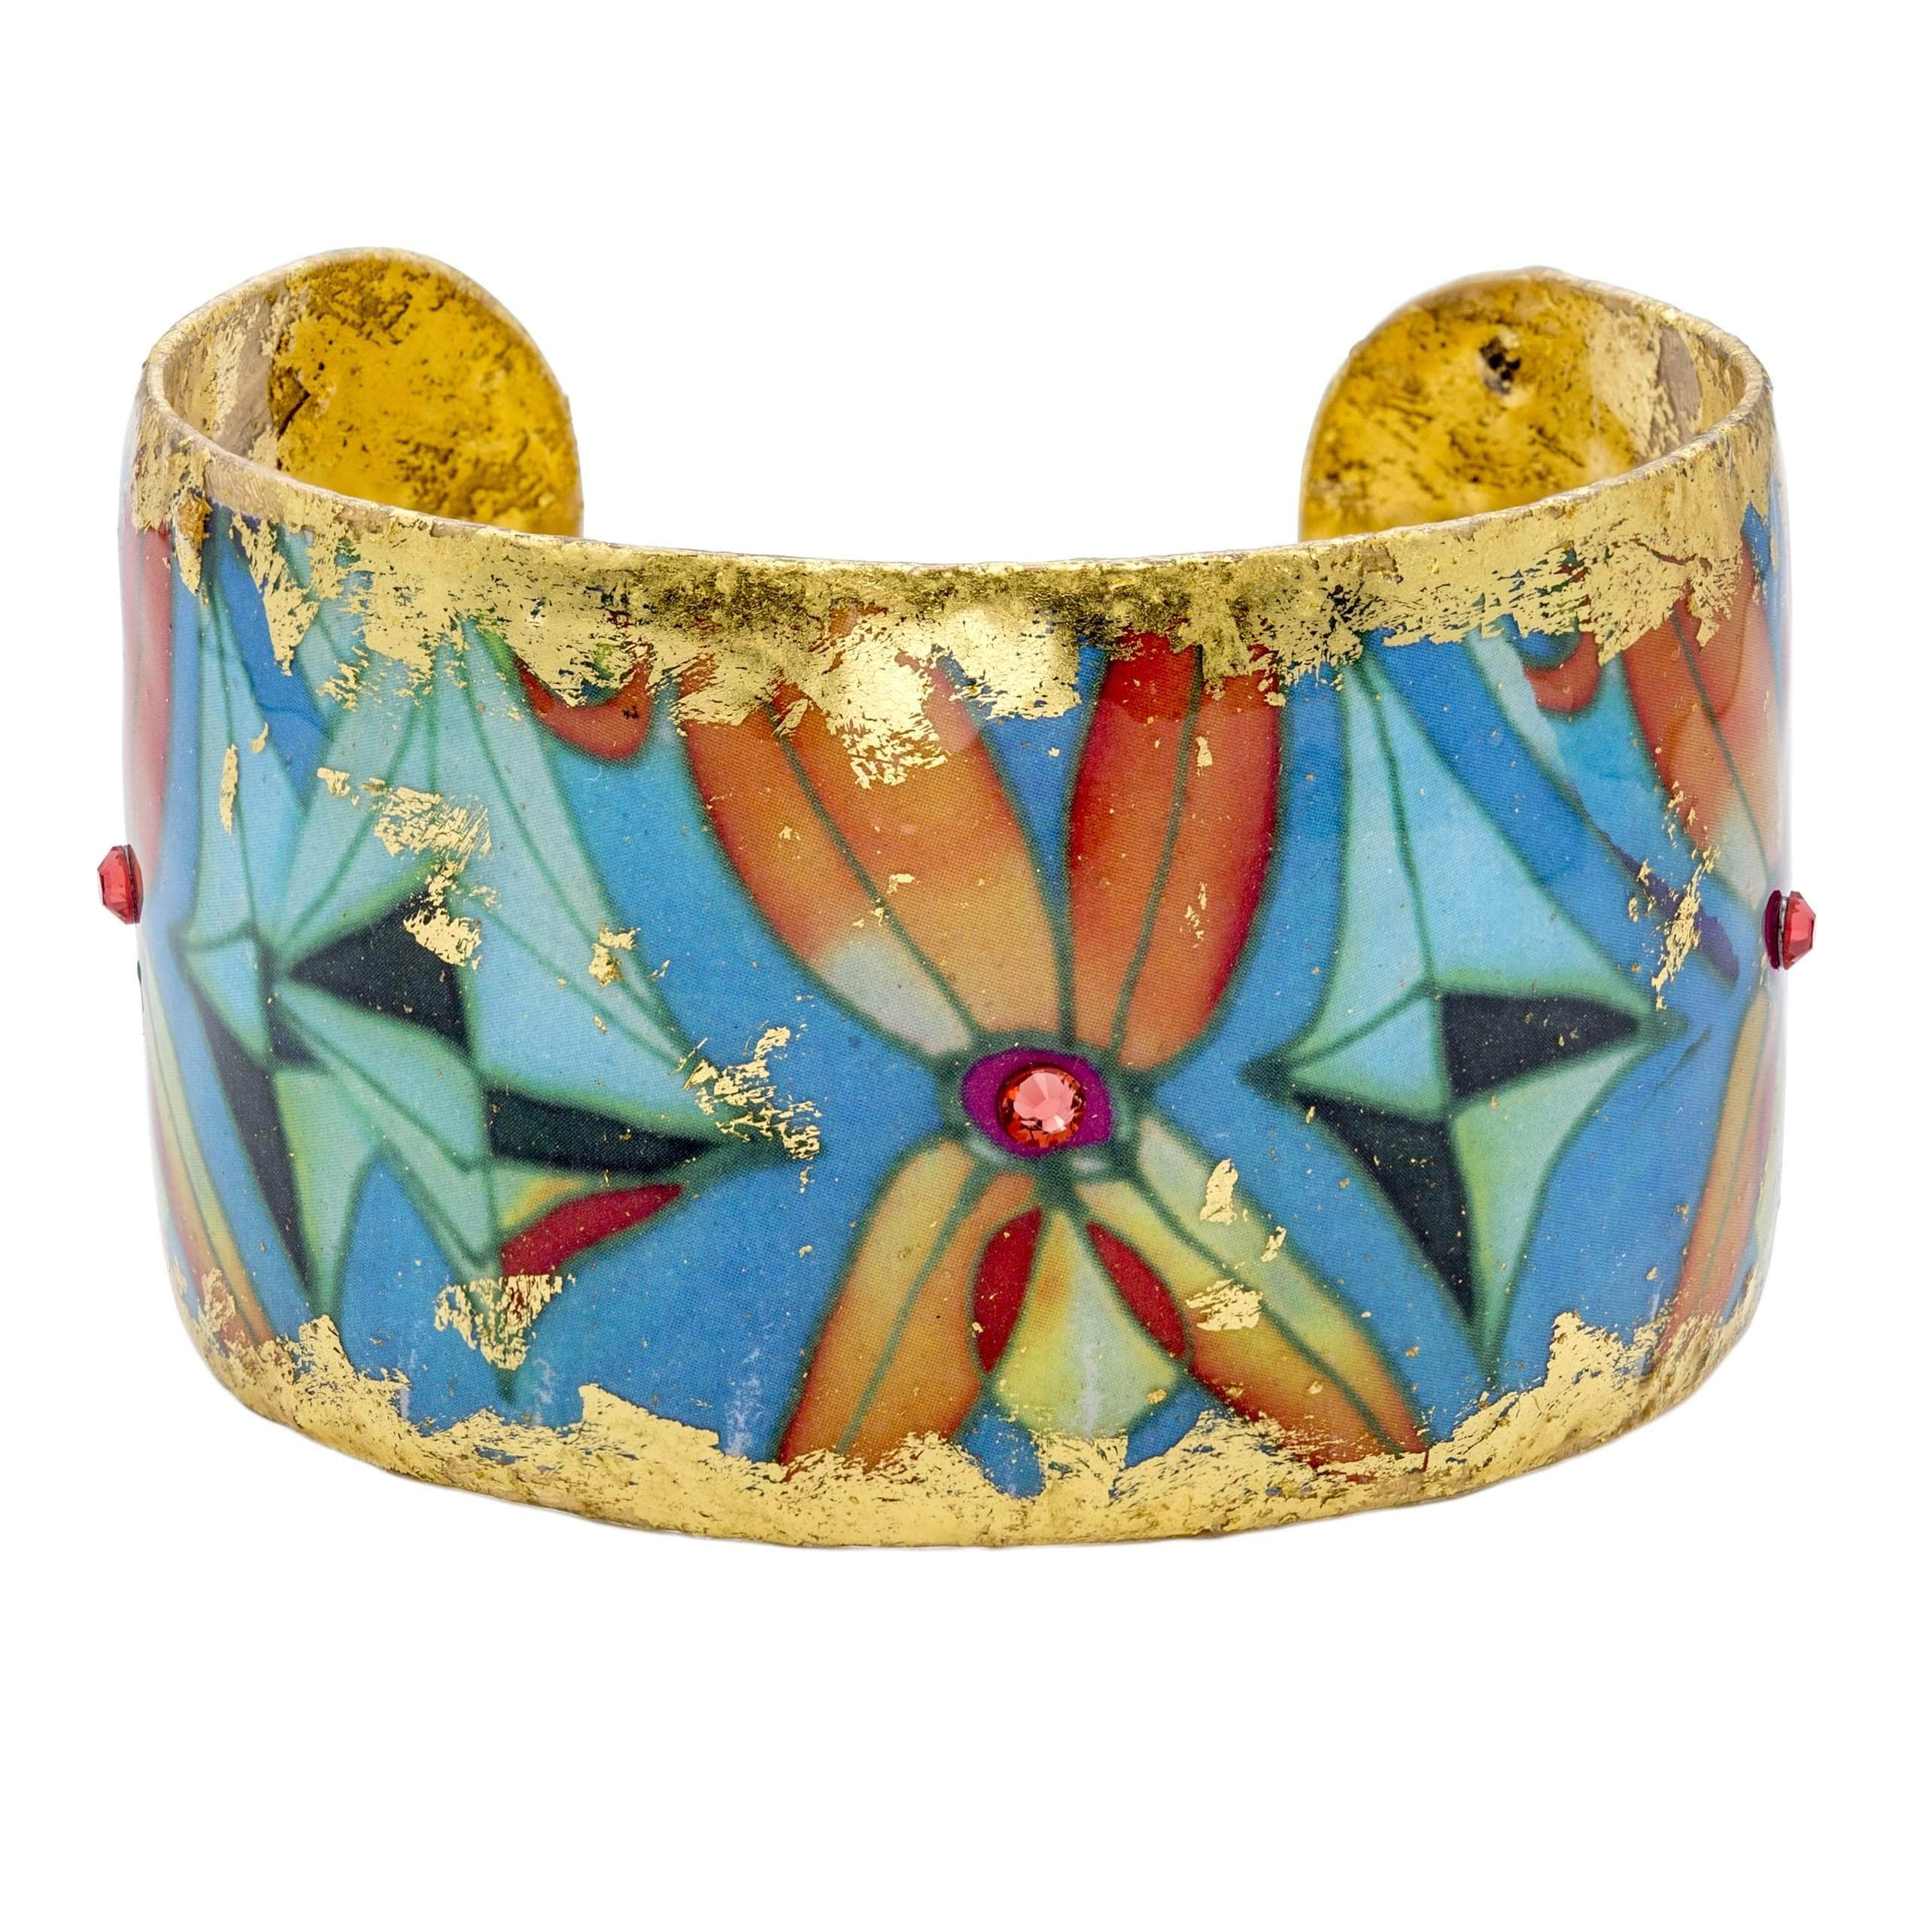 "Sea Floral 1.5"" Gold Cuff - MG104-Evocateur-Renee Taylor Gallery"